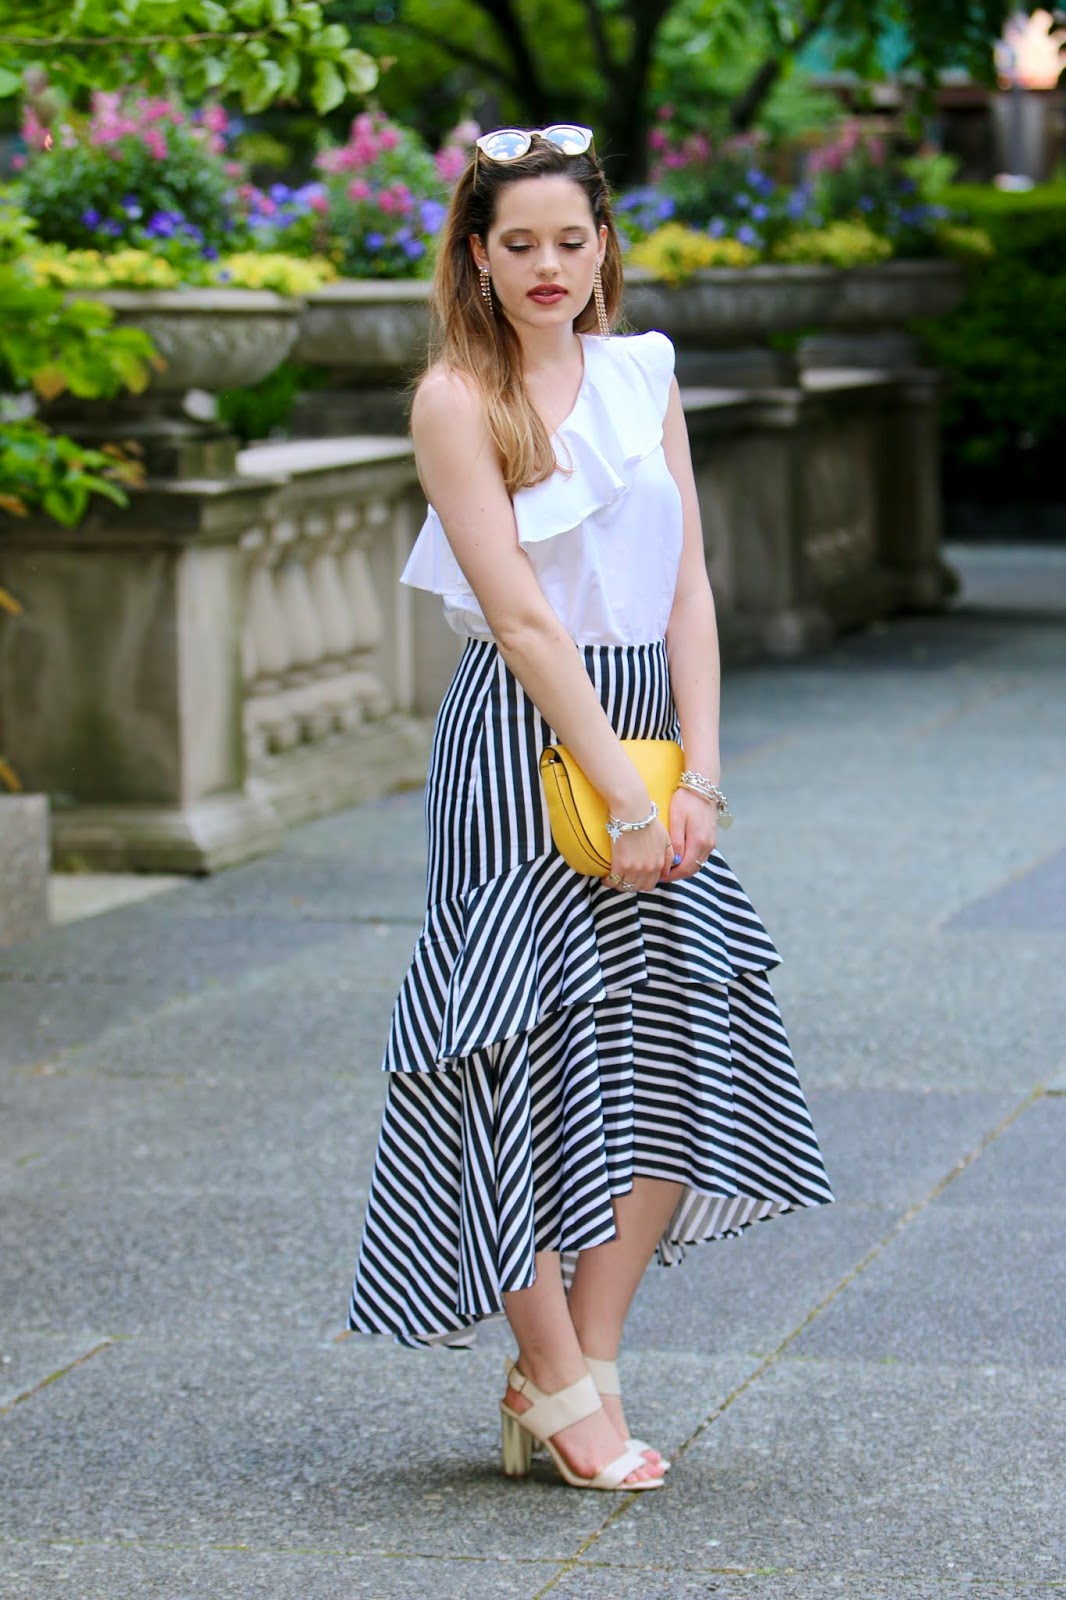 Nyc fashion blogger Kathleen Harper's Chicago summer street style